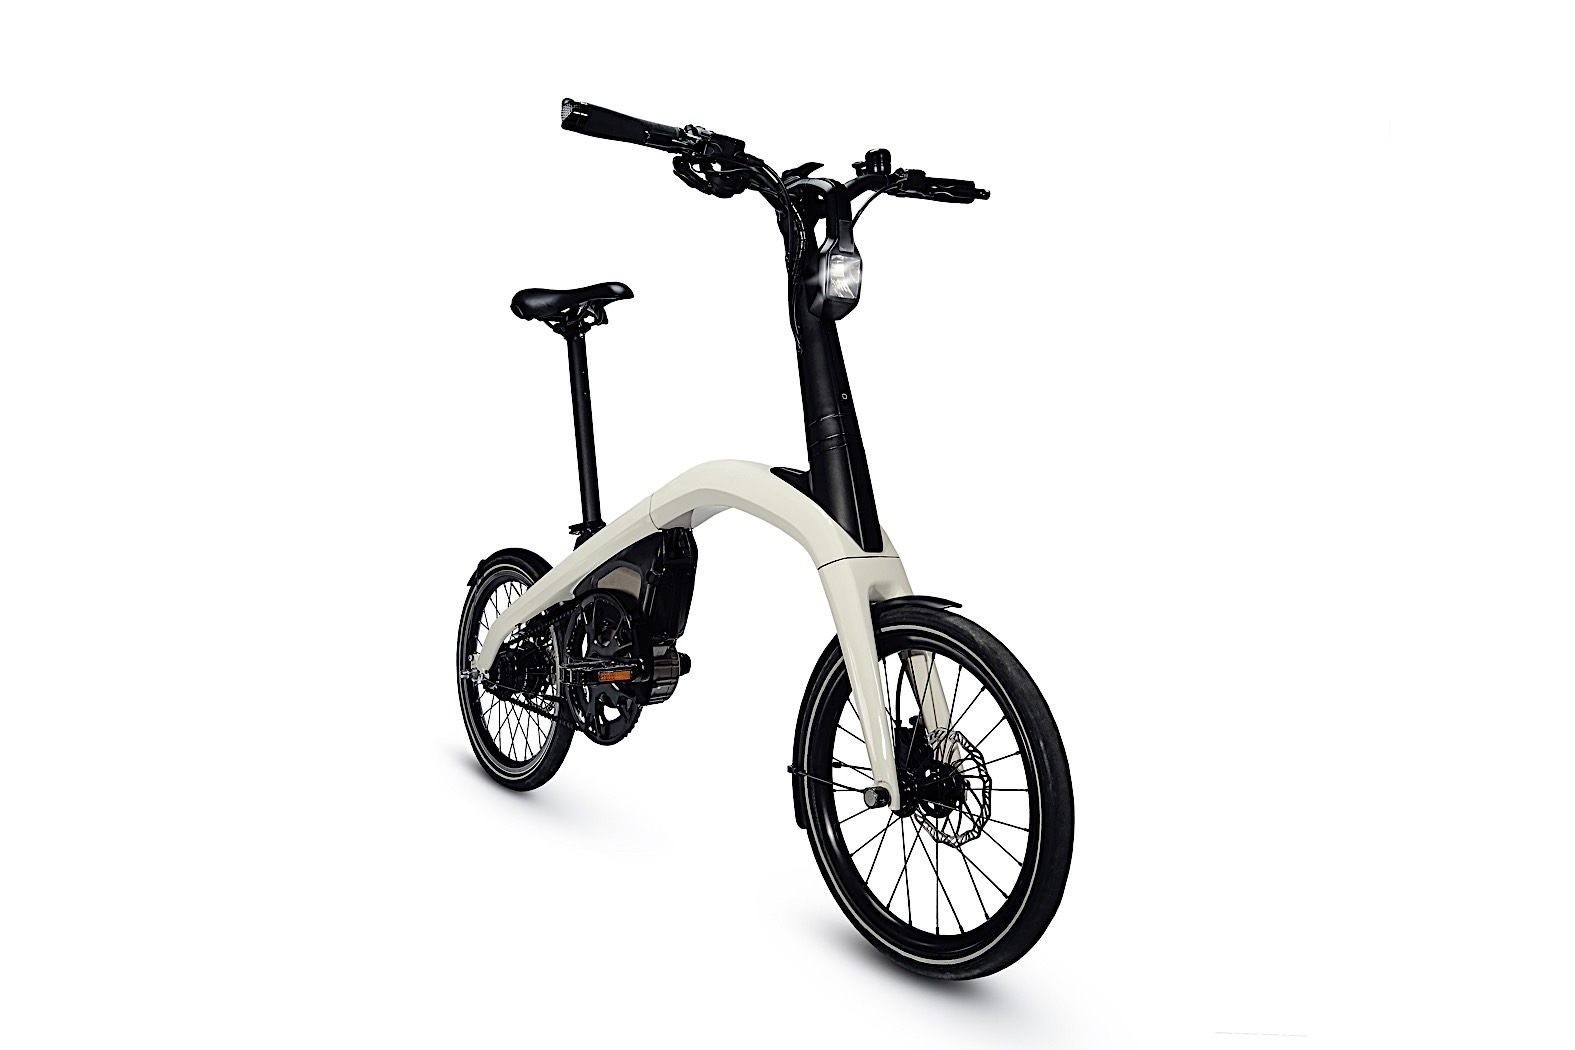 064b8154cc0 Get $10,000 from GM If You Name Its New Electric Bikes Brand ...